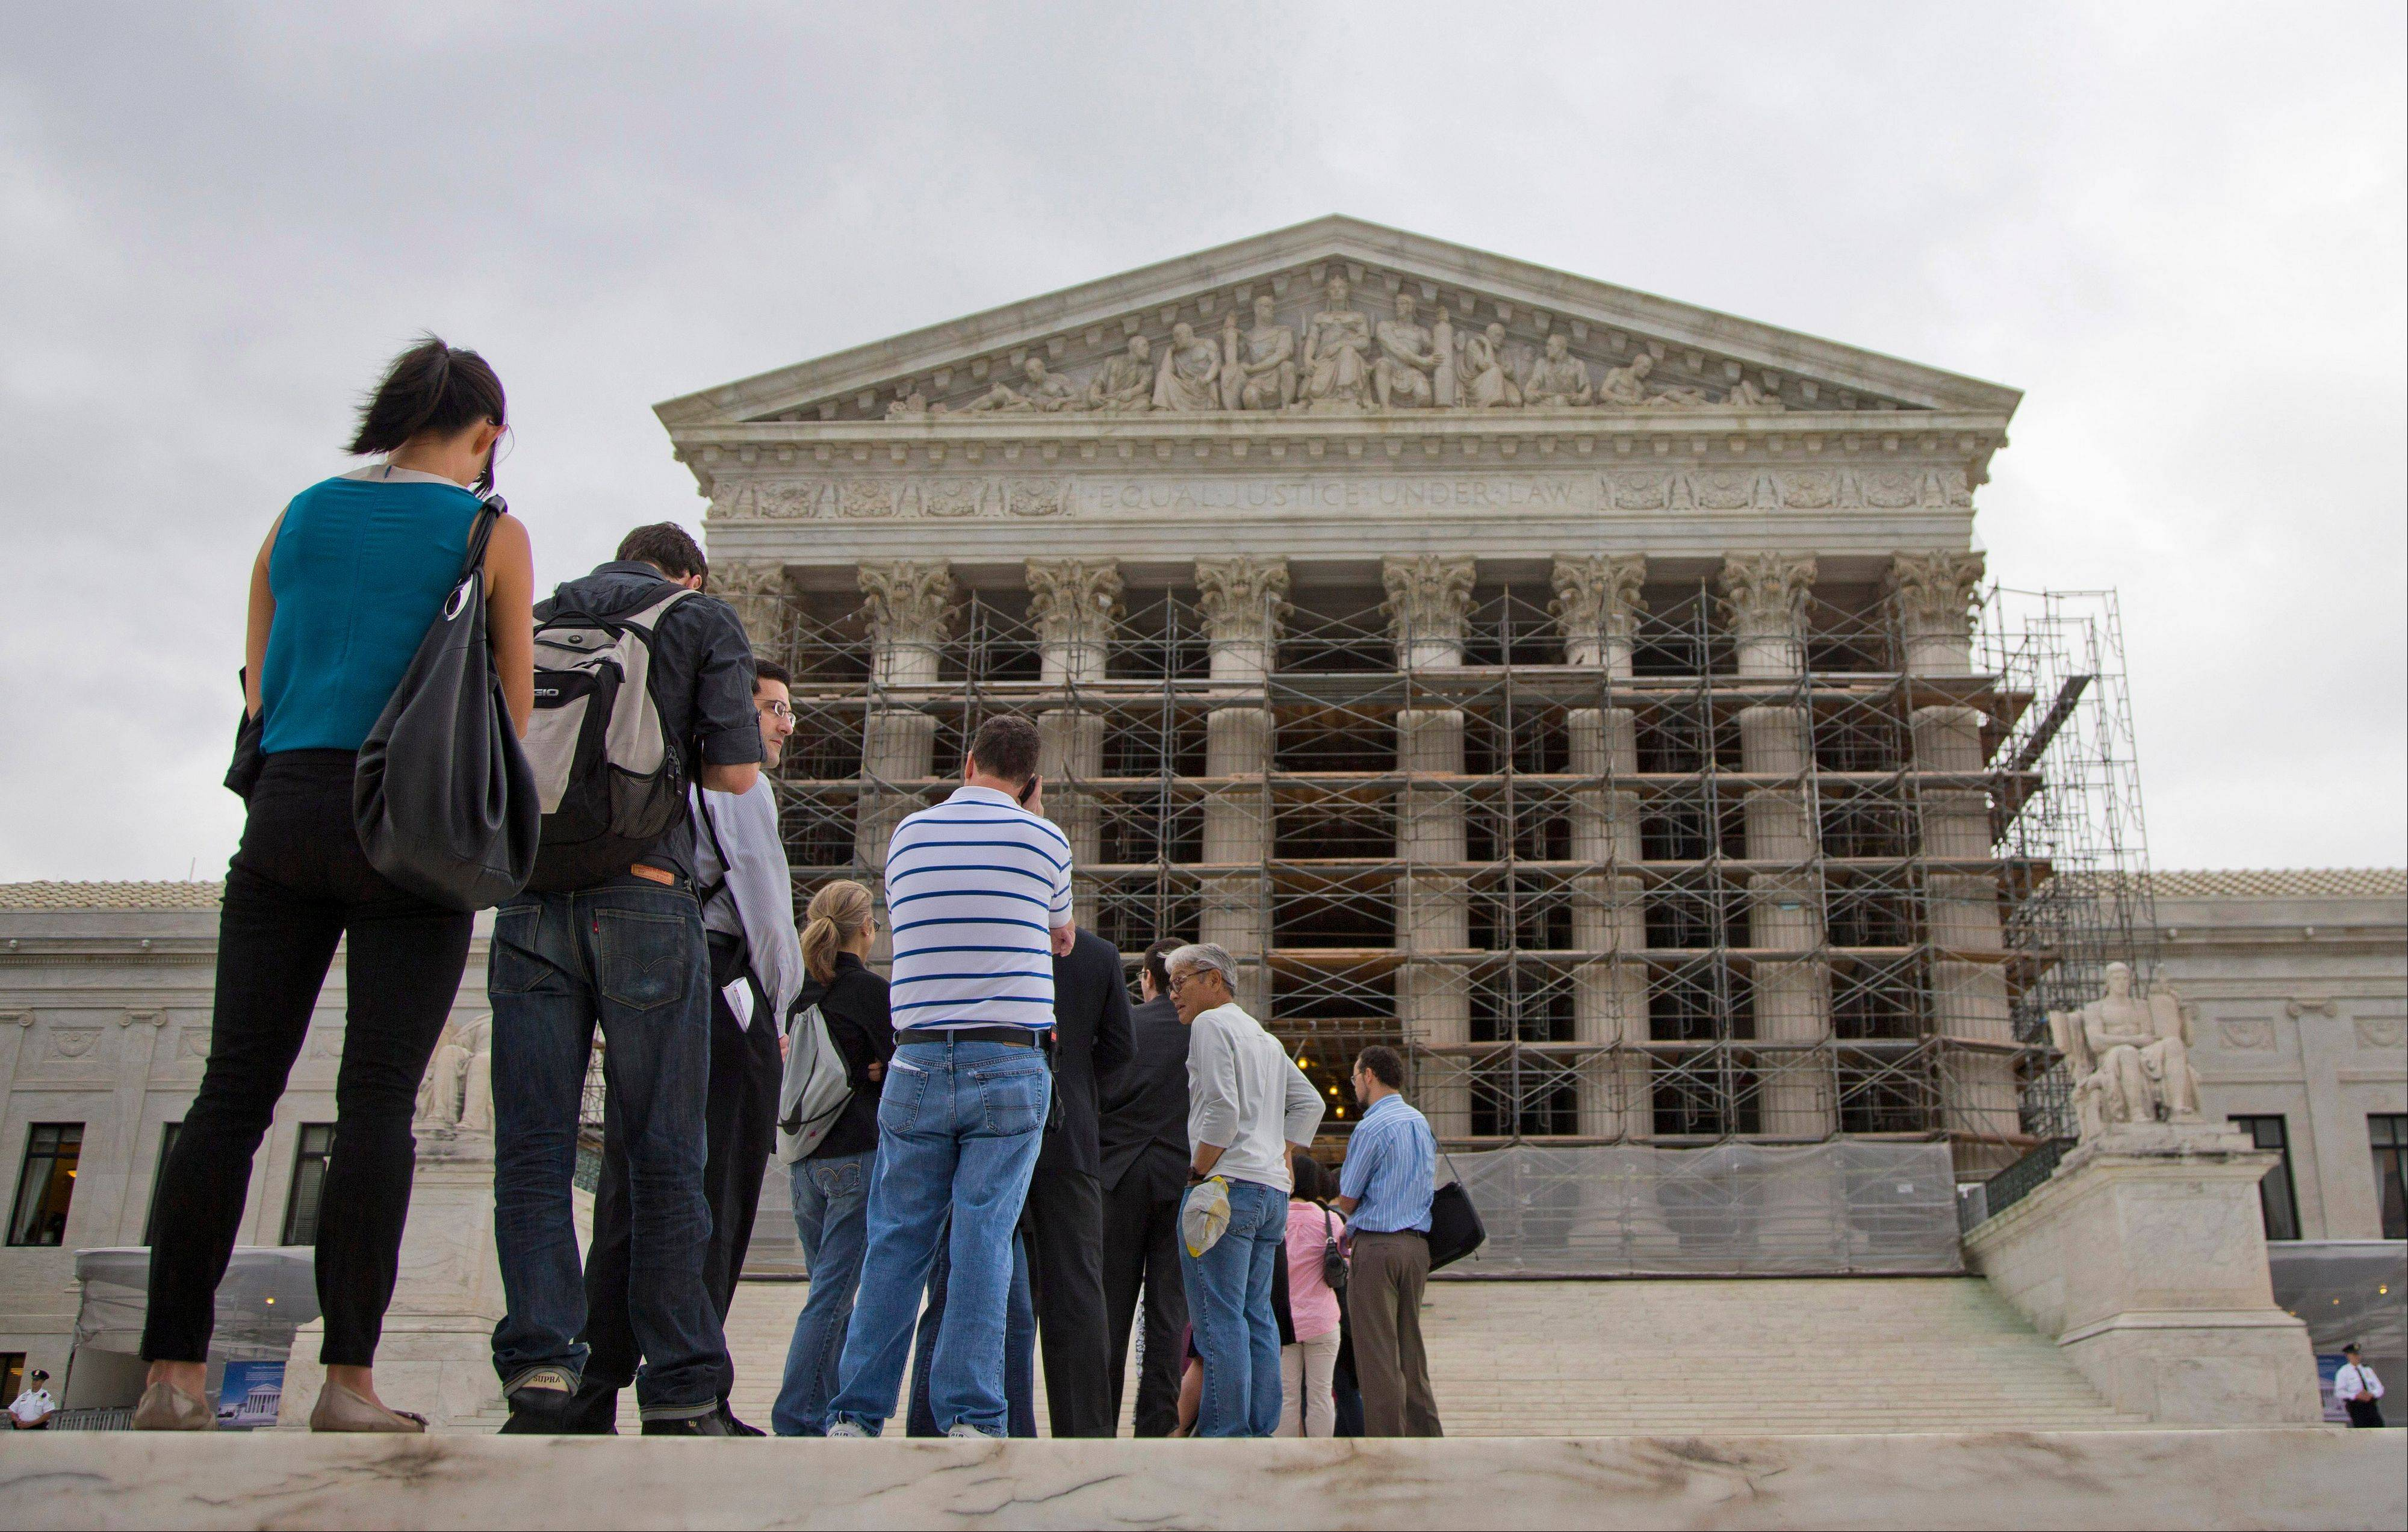 The Supreme Court asks God for help before every public session. Now the justices will settle a dispute over prayers in the halls of government. The case before the court involves prayers said at the start of town council meetings in Greece, N.Y., outside of Rochester.